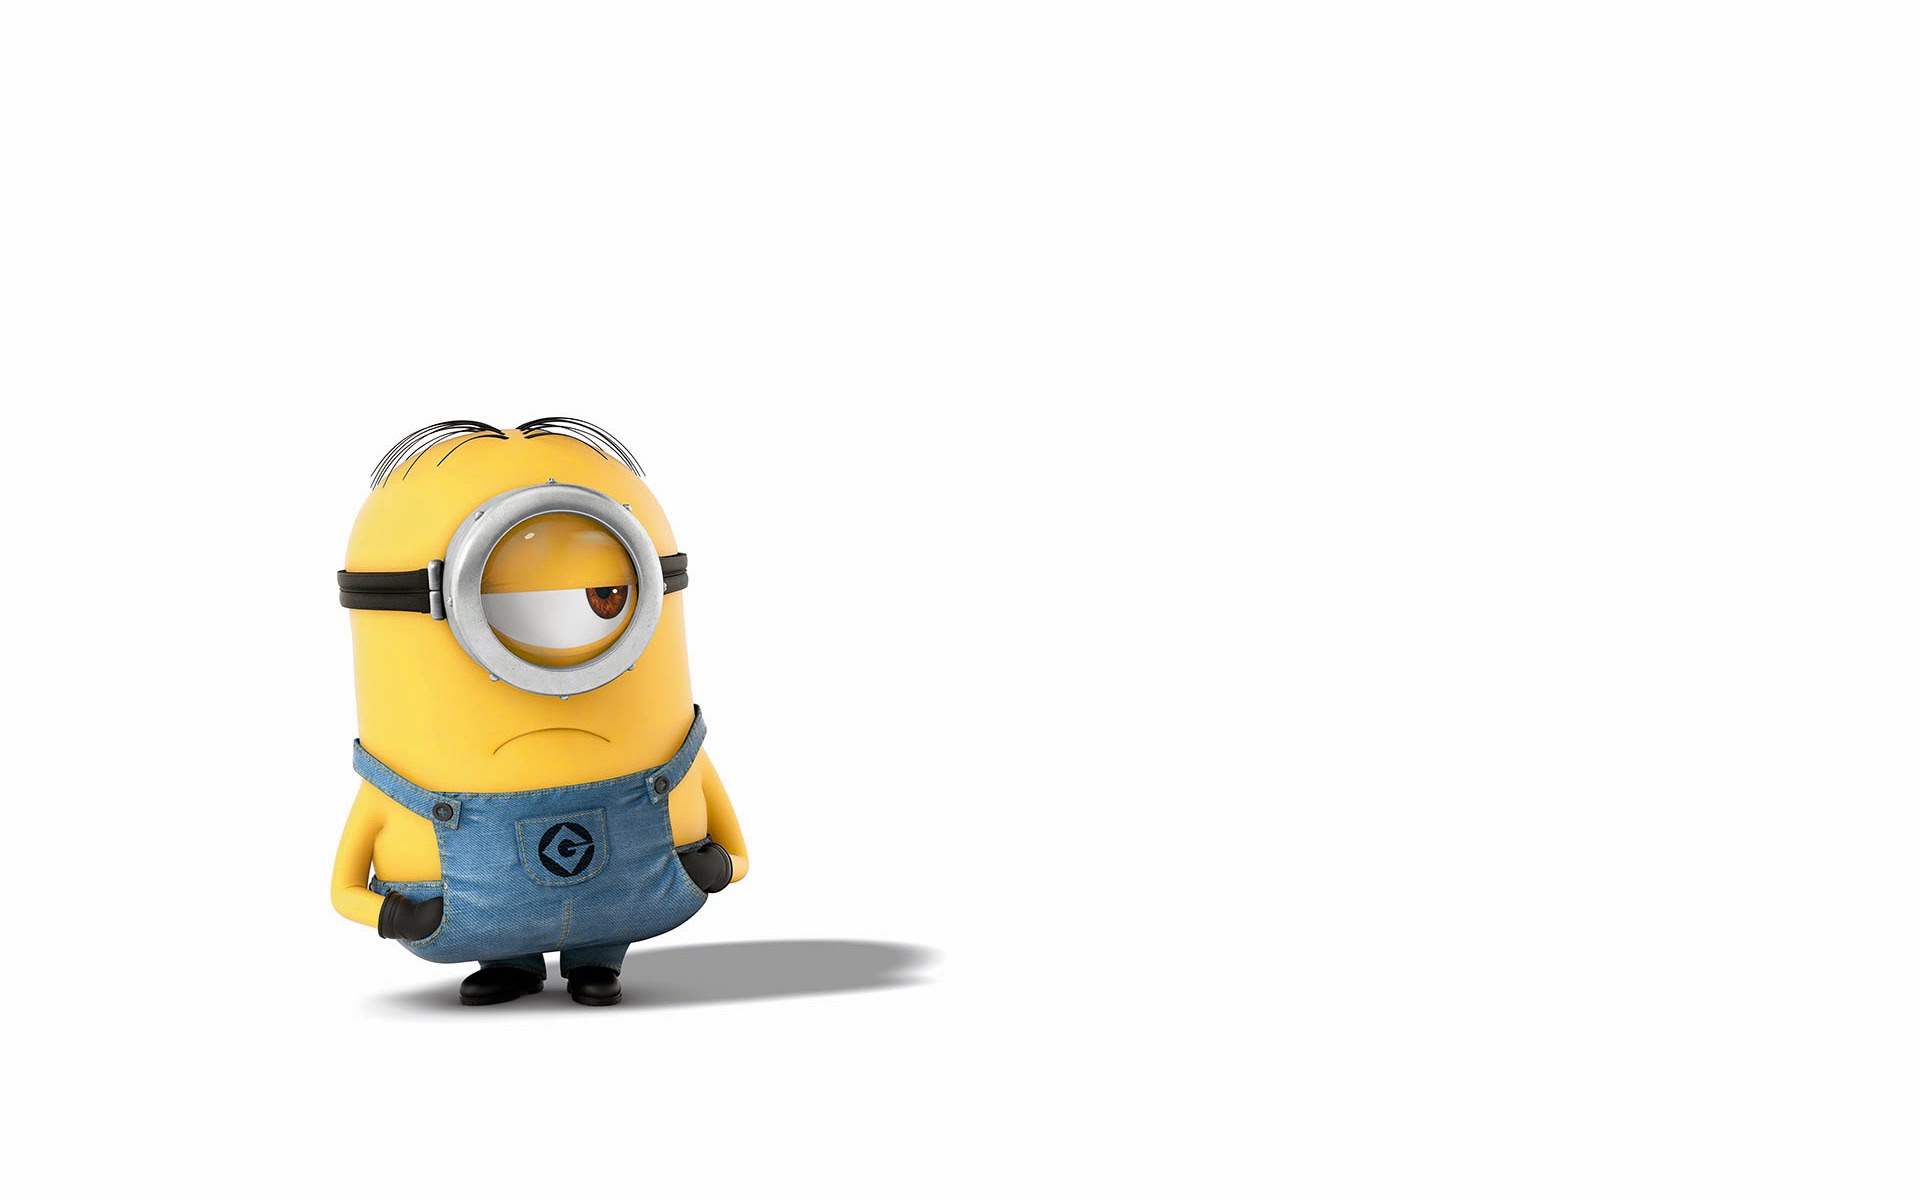 [47+] Wallpapers Minions Despicable Me HD on WallpaperSafari